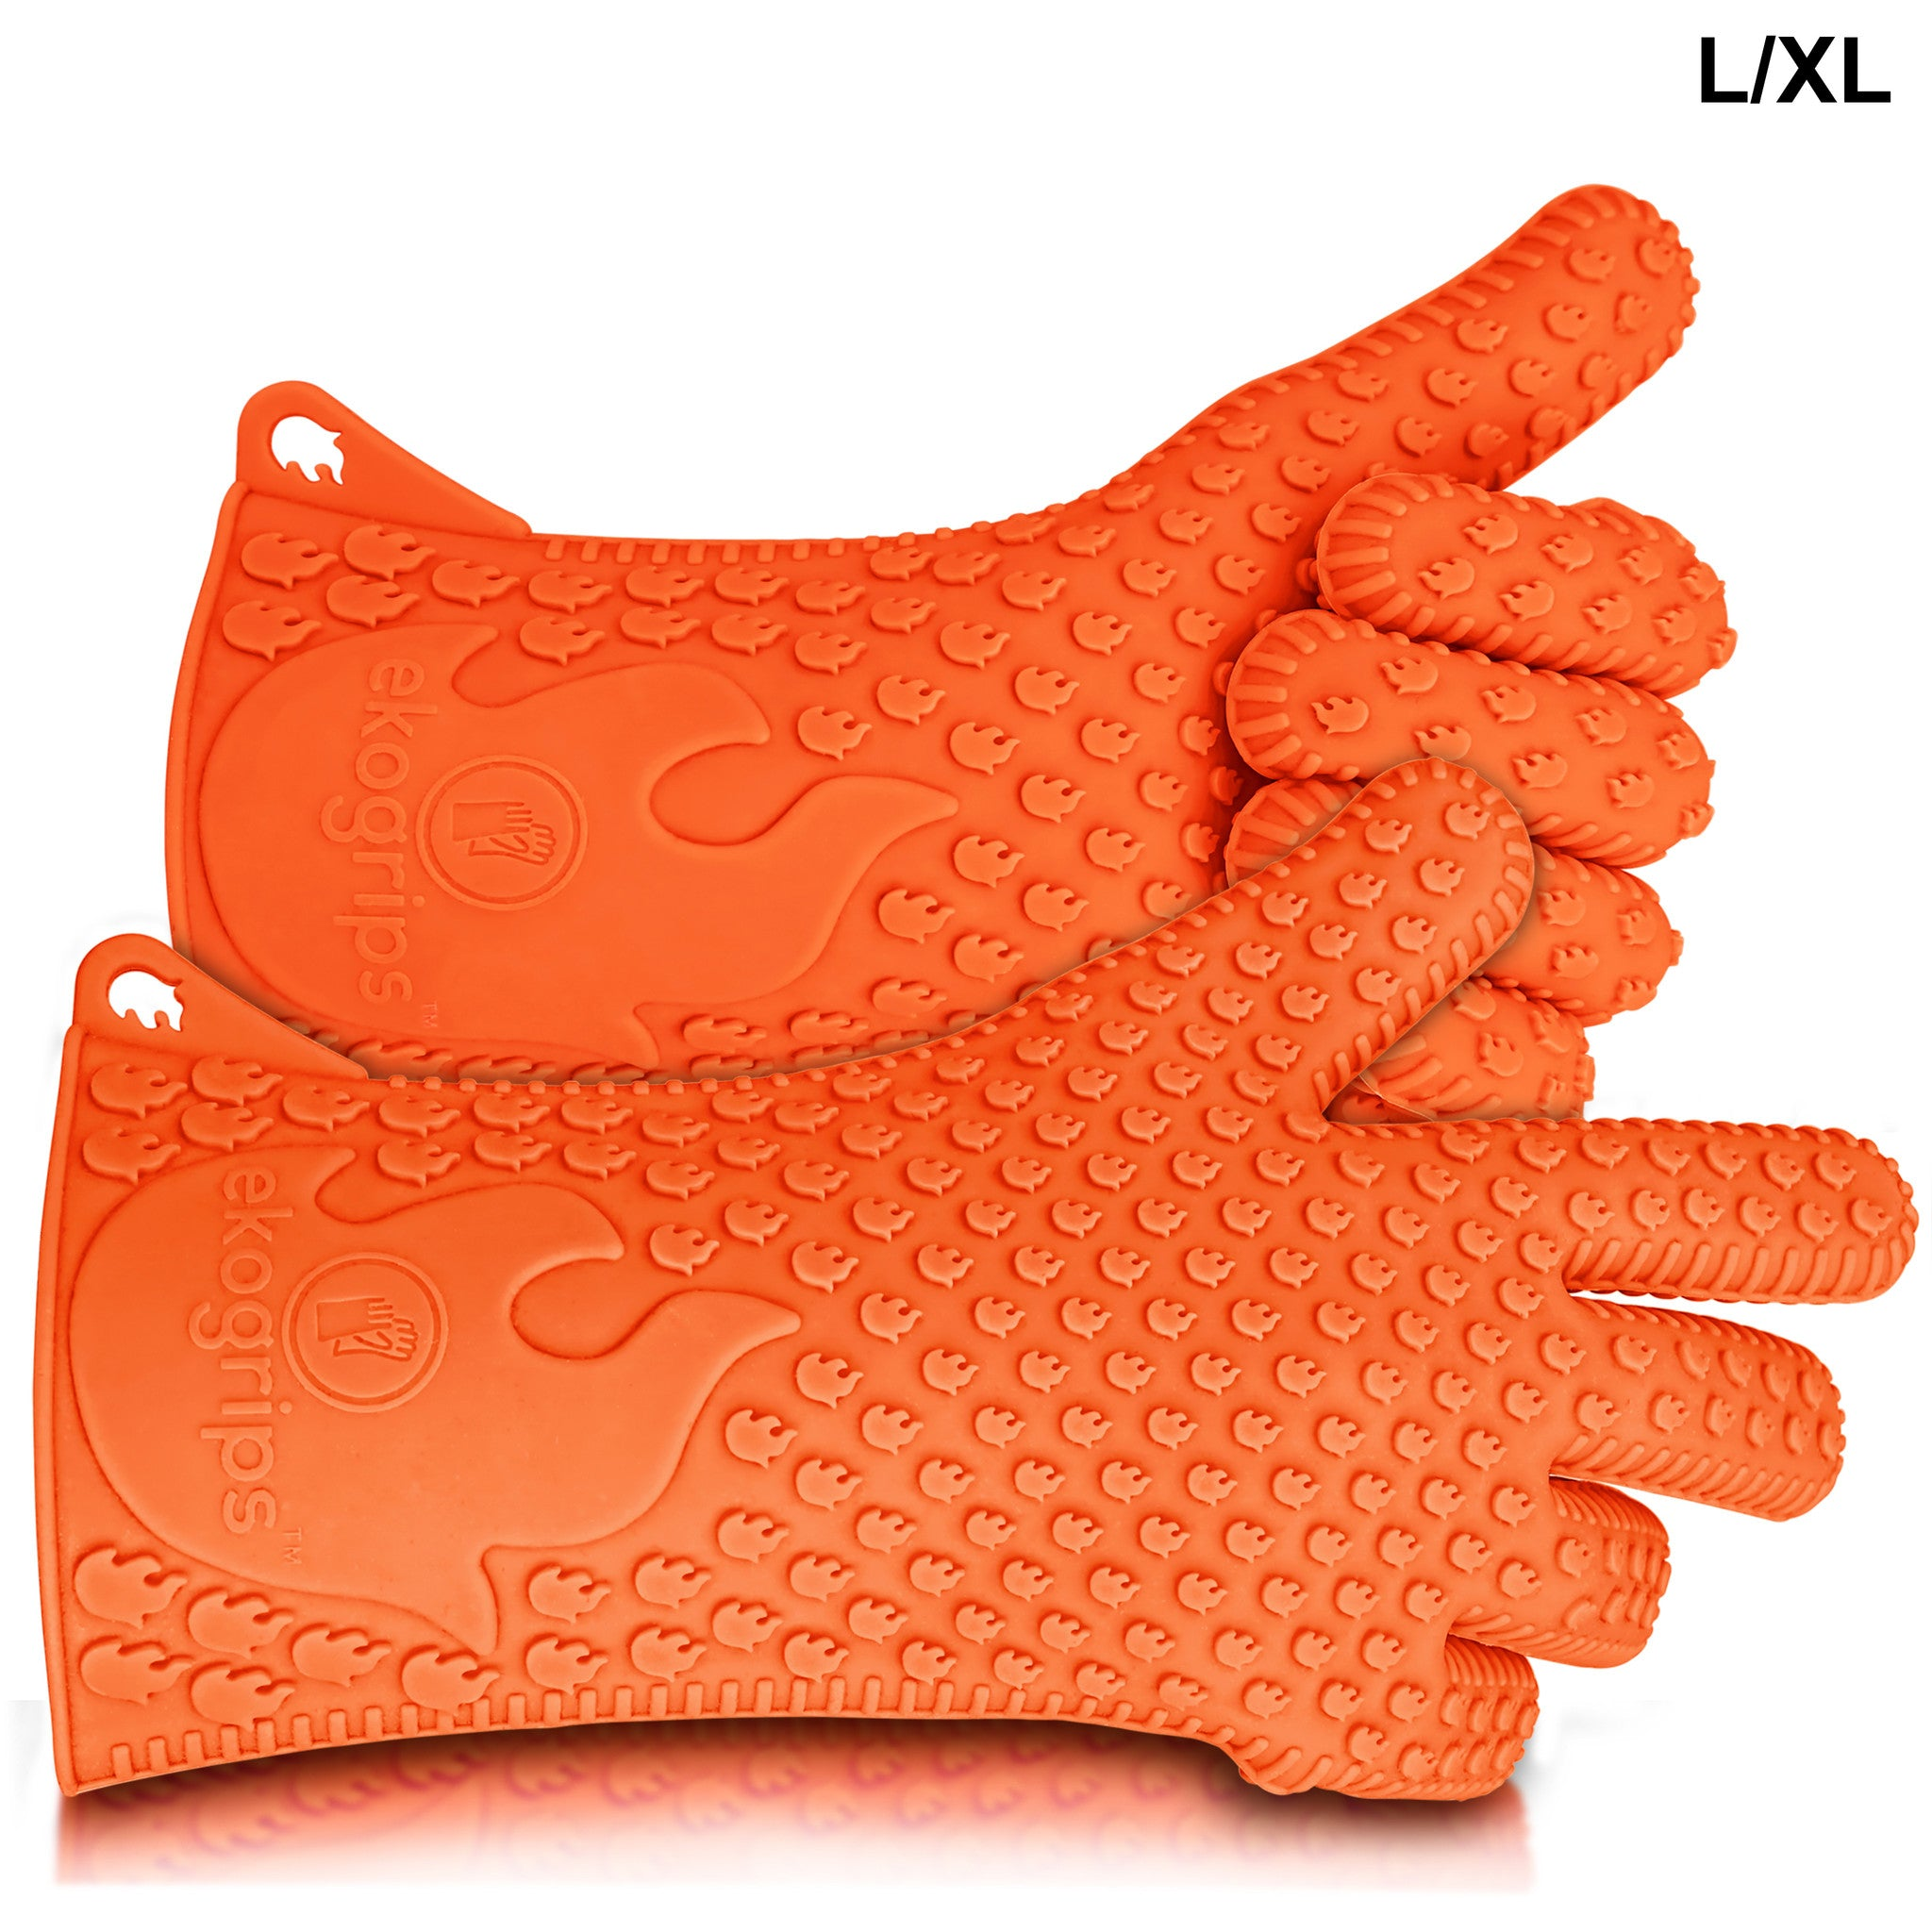 best bbq gloves silicone size xl and xxl amazon's choice